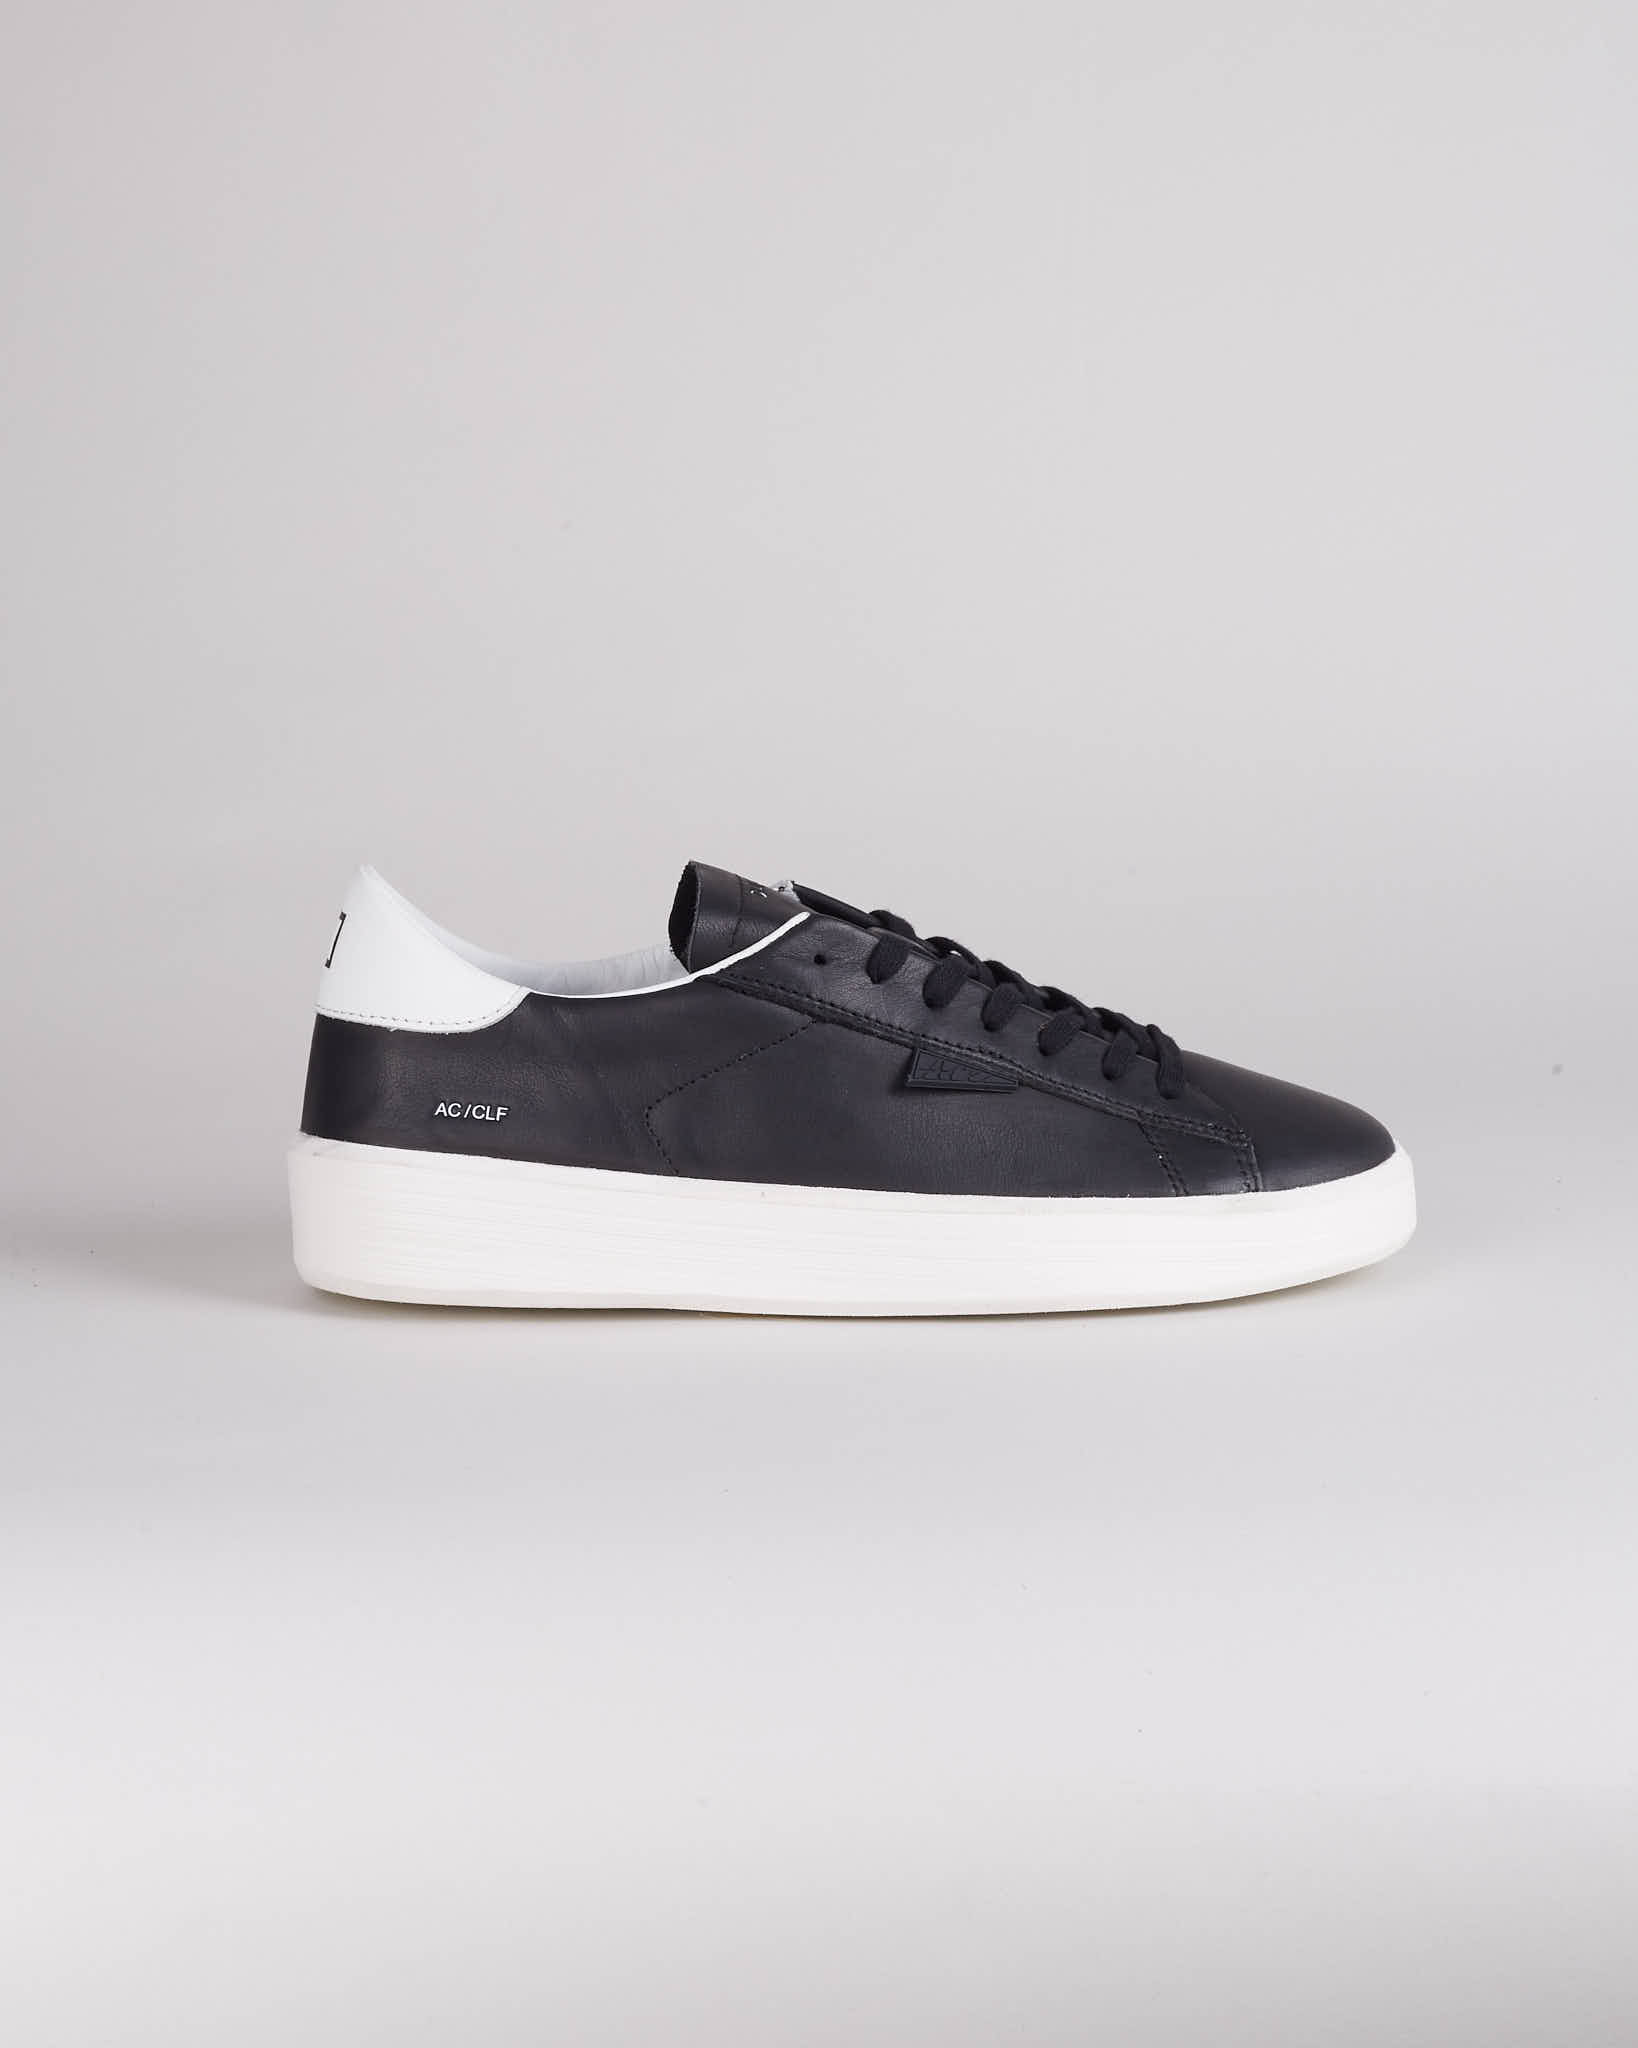 Sneakers Ace Calf D.A.T.E. DATE | Sneakers | M351ACCABKBK